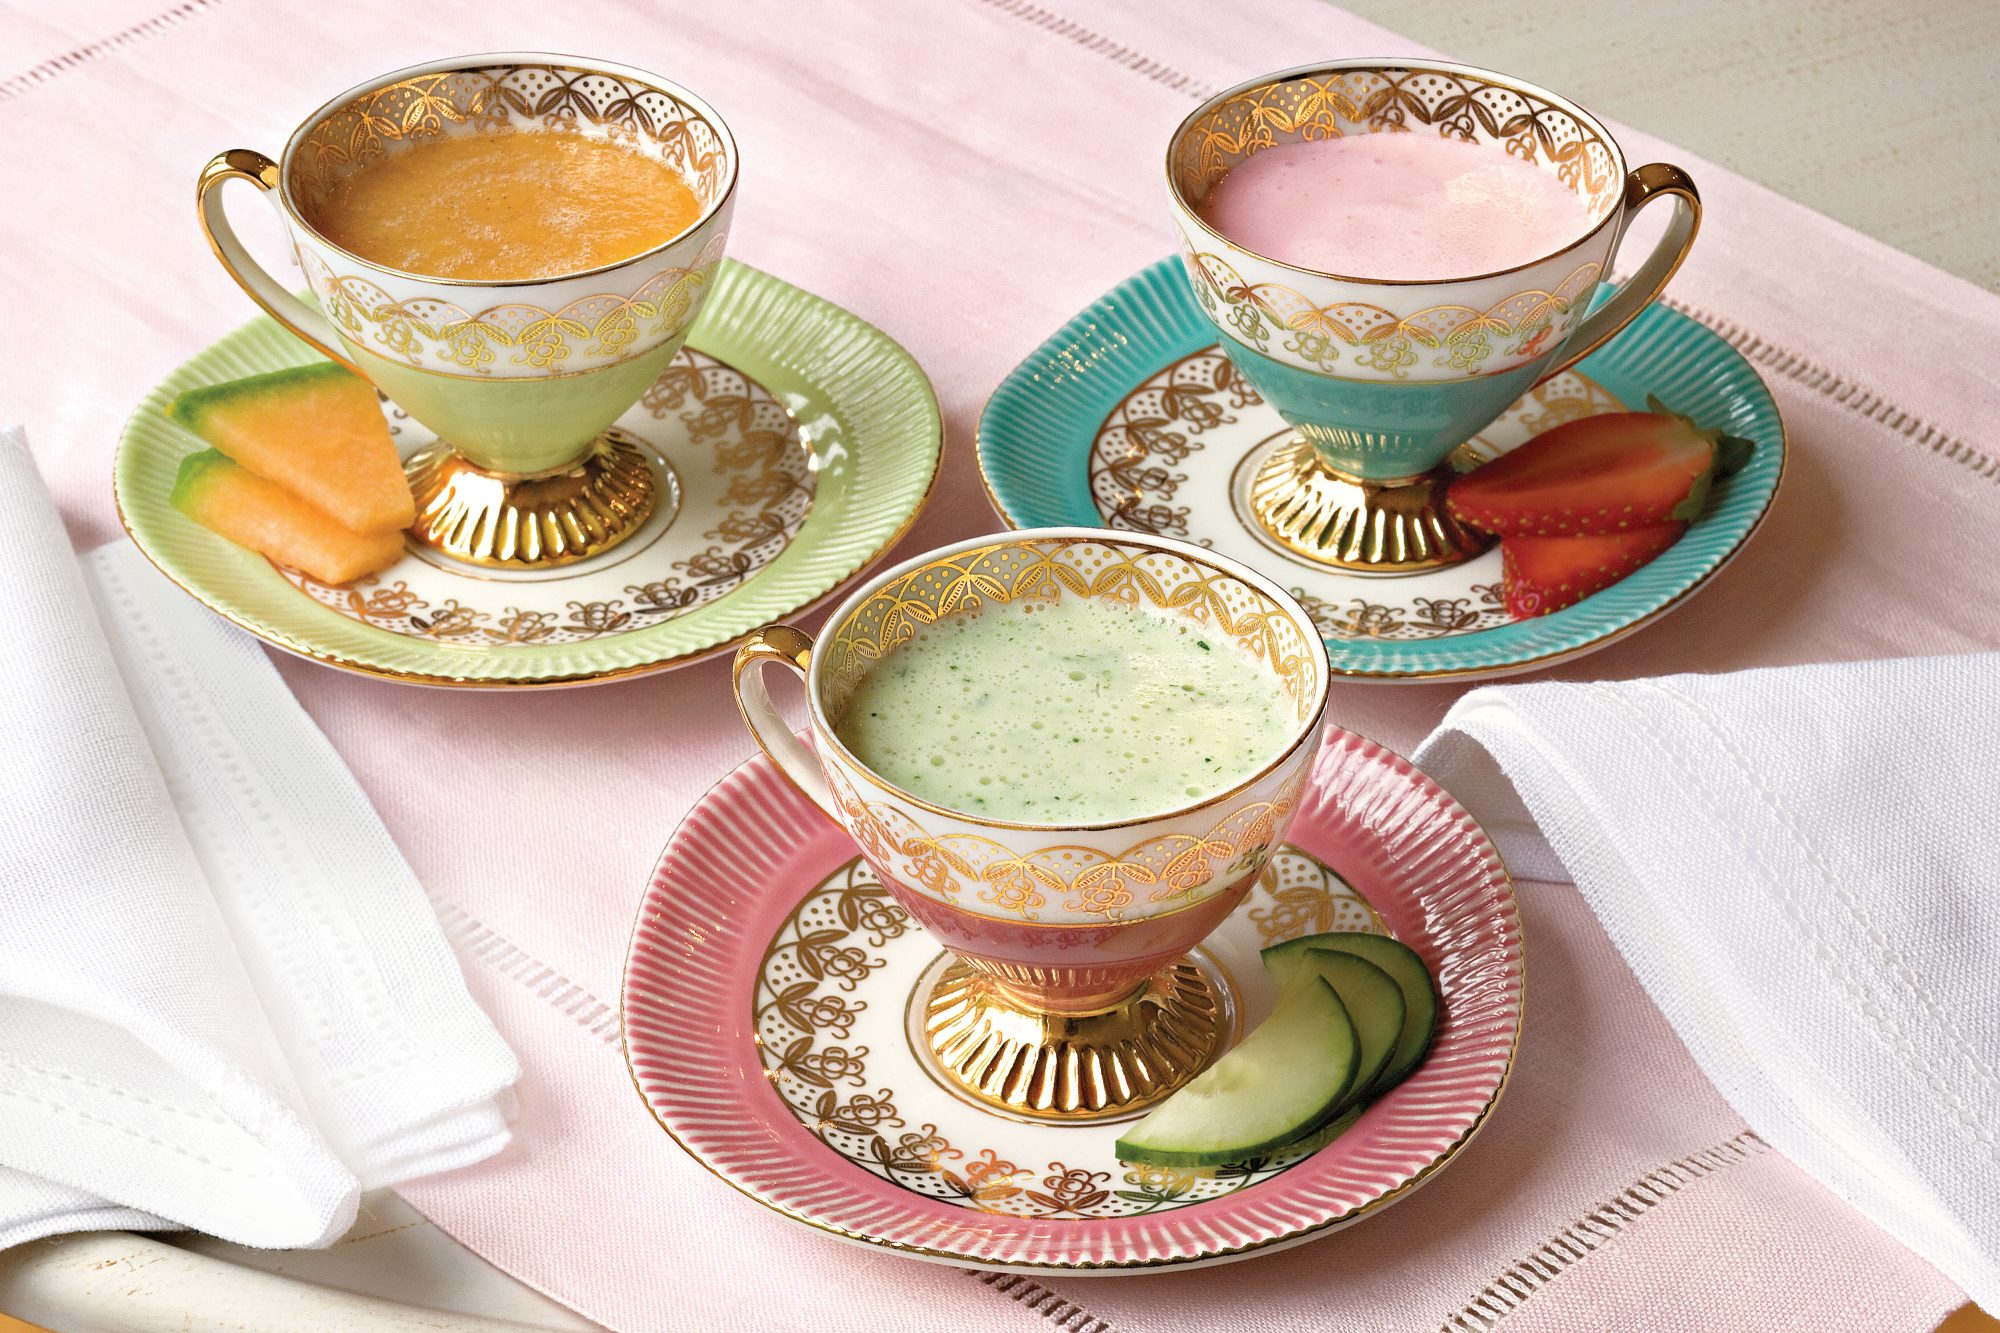 Wedding Bridal Shower Ideas: Chilled Soups